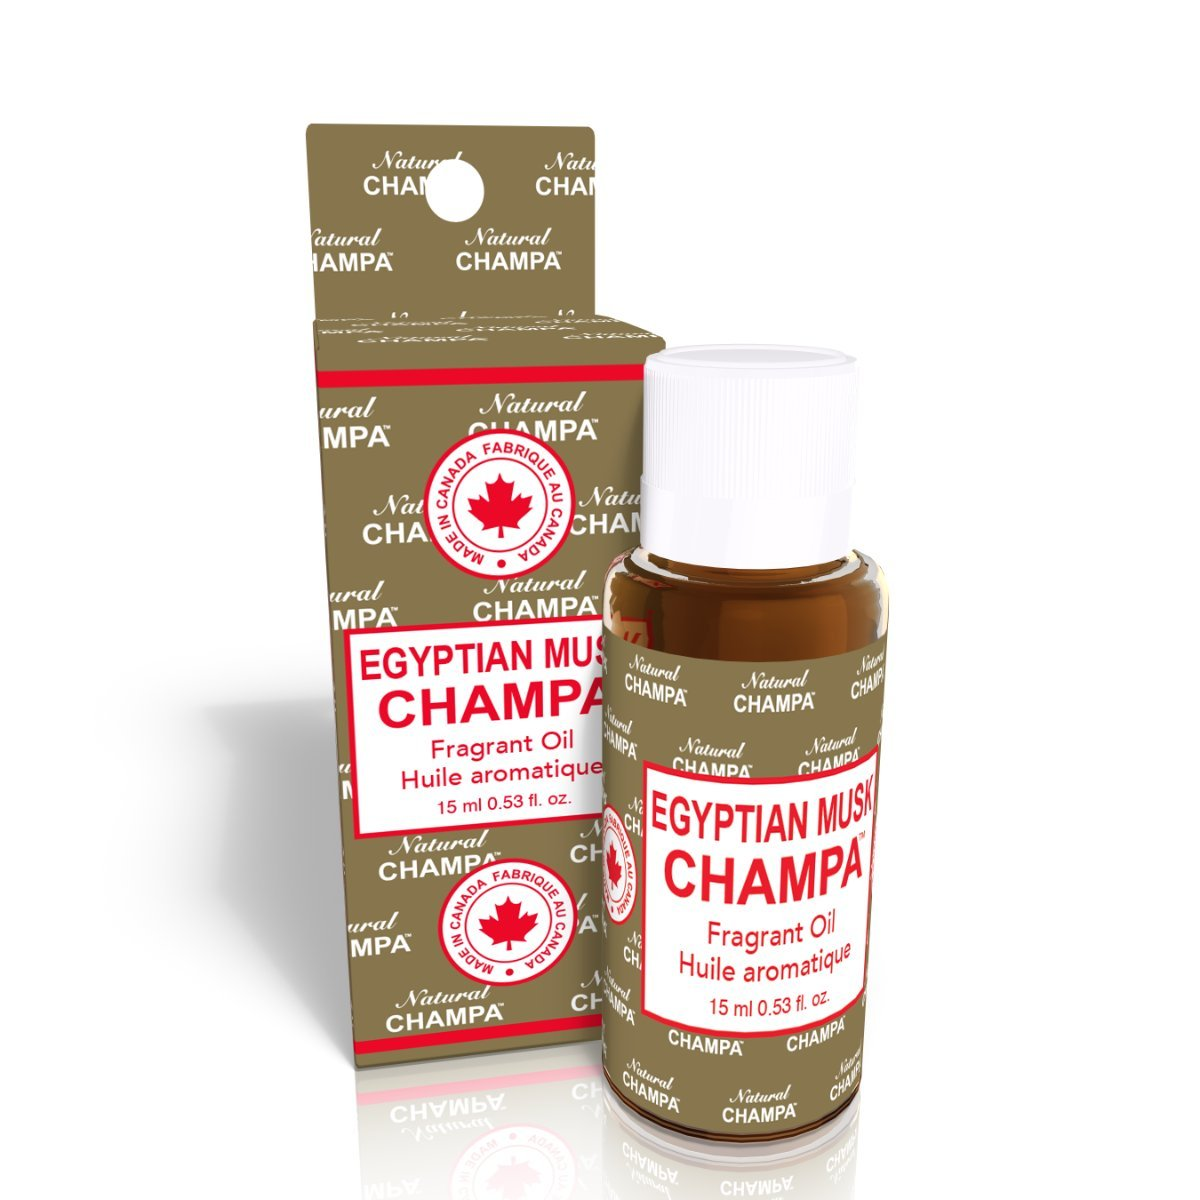 Natural Champa Fragrant Oil Concentrated Fragrance Oil - Ideal for Environmental Scenting, Bath, Perfumery, Oil Burners & Diffusers - Made with Natural Essential Oils.(15 ml.) - Egyptian Musk Natural Scents